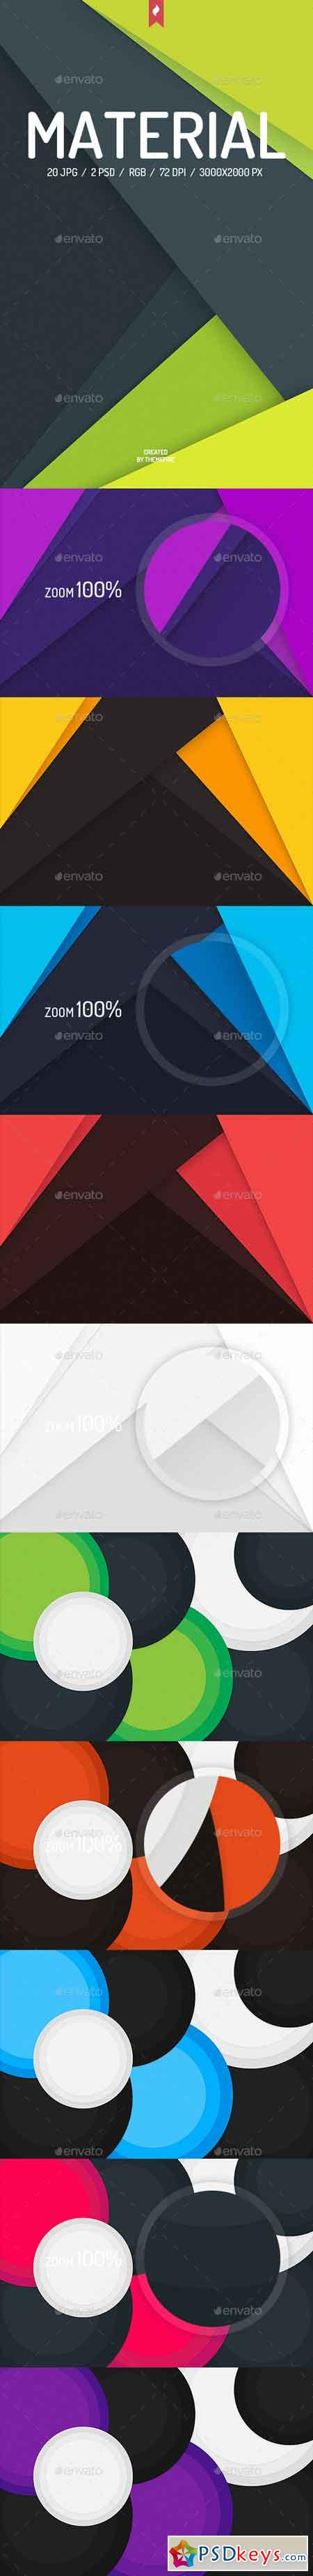 20 Material Design Backgrounds 13745604